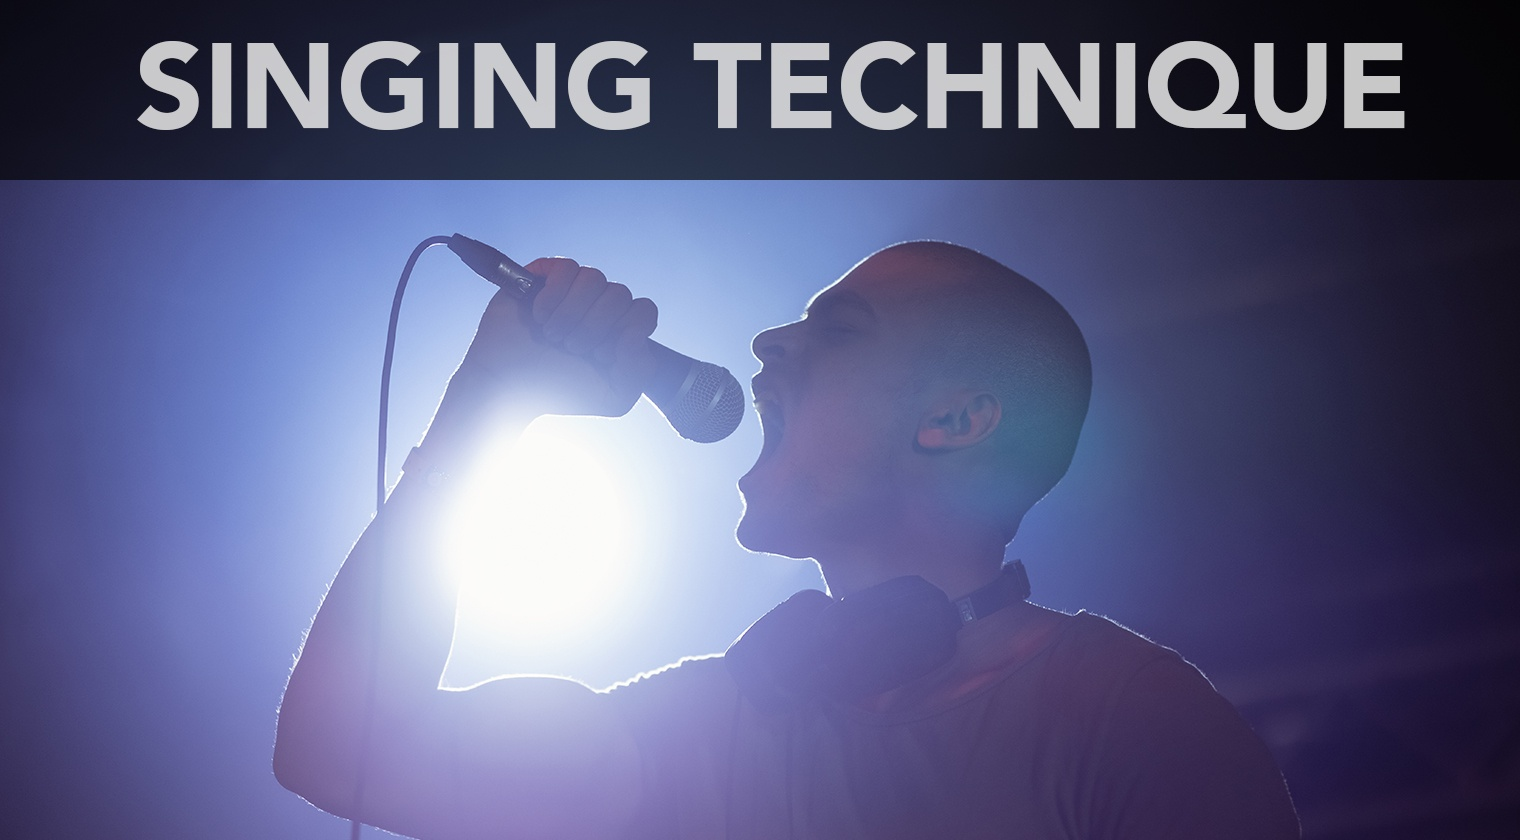 Singing Technique